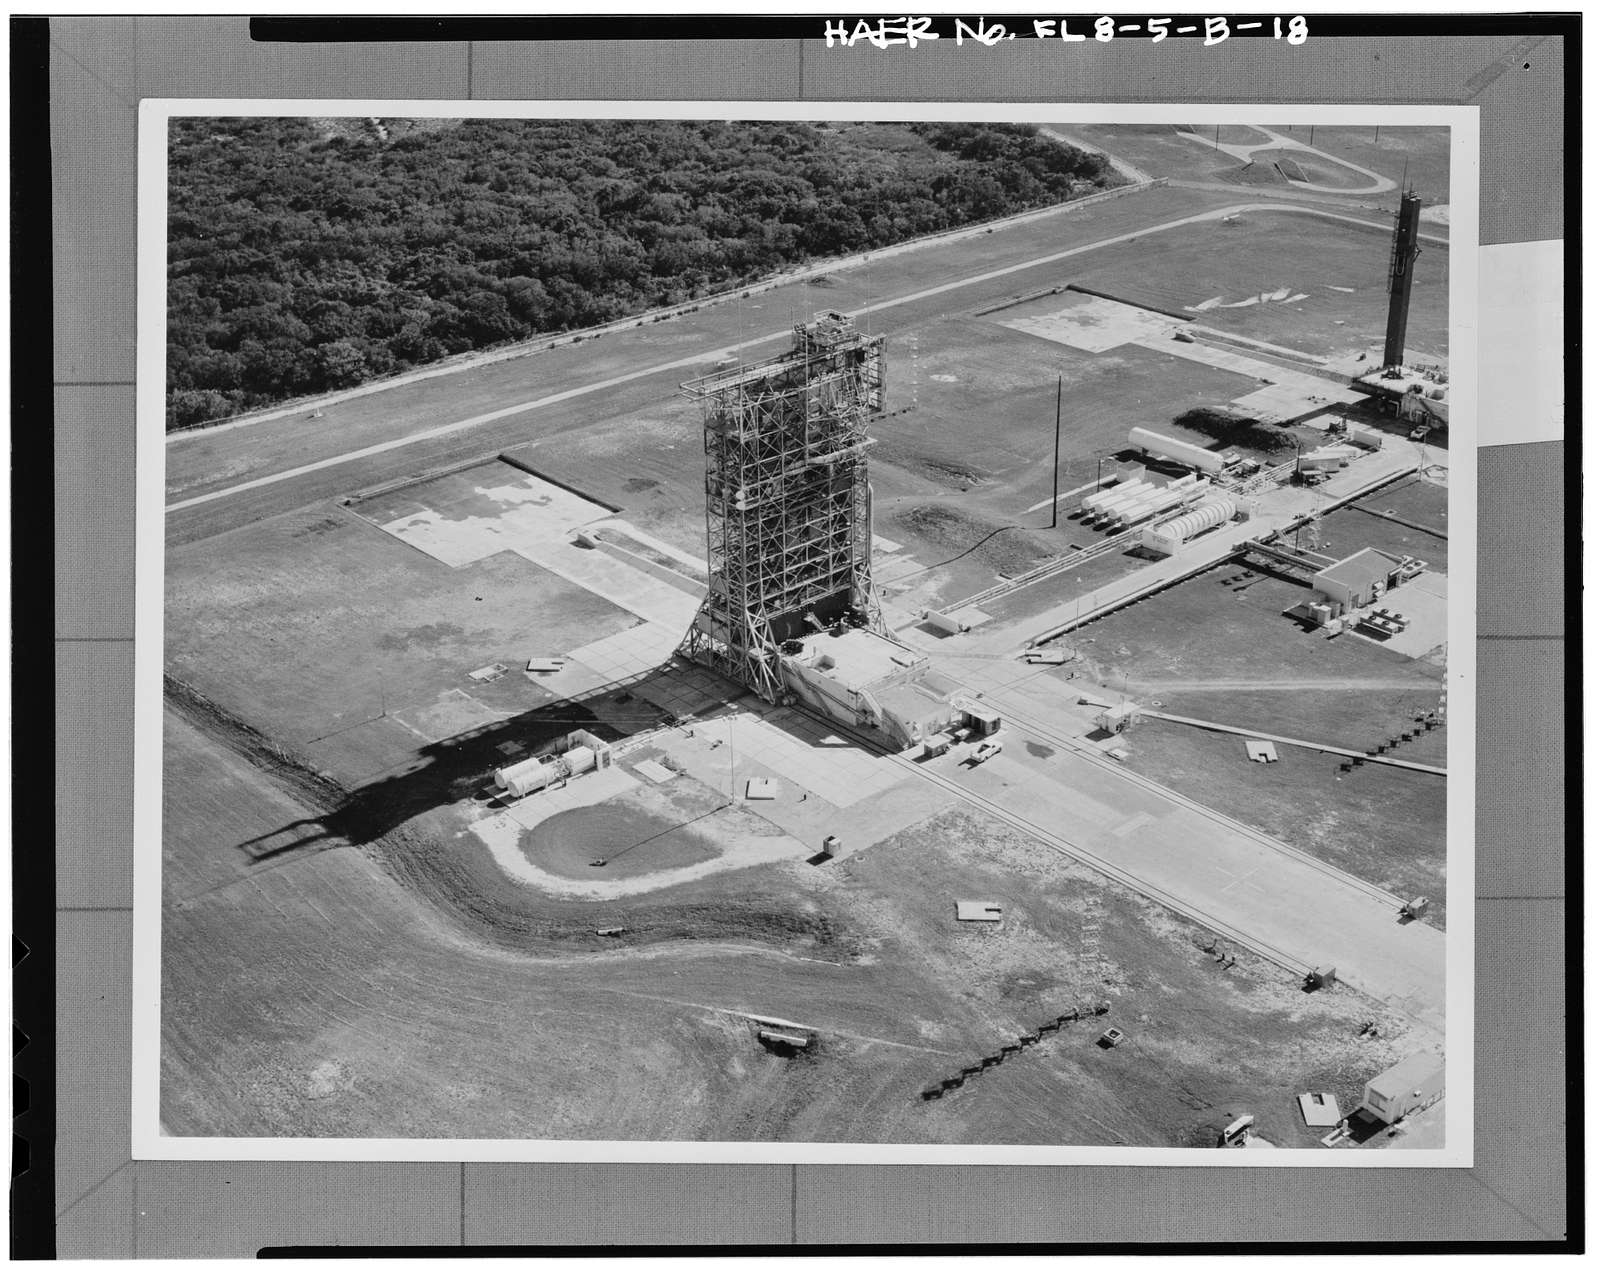 Cape Canaveral Air Station, Launch Complex 17, Facility 28501, East end of Lighthouse Road, Cape Canaveral, Brevard County, FL